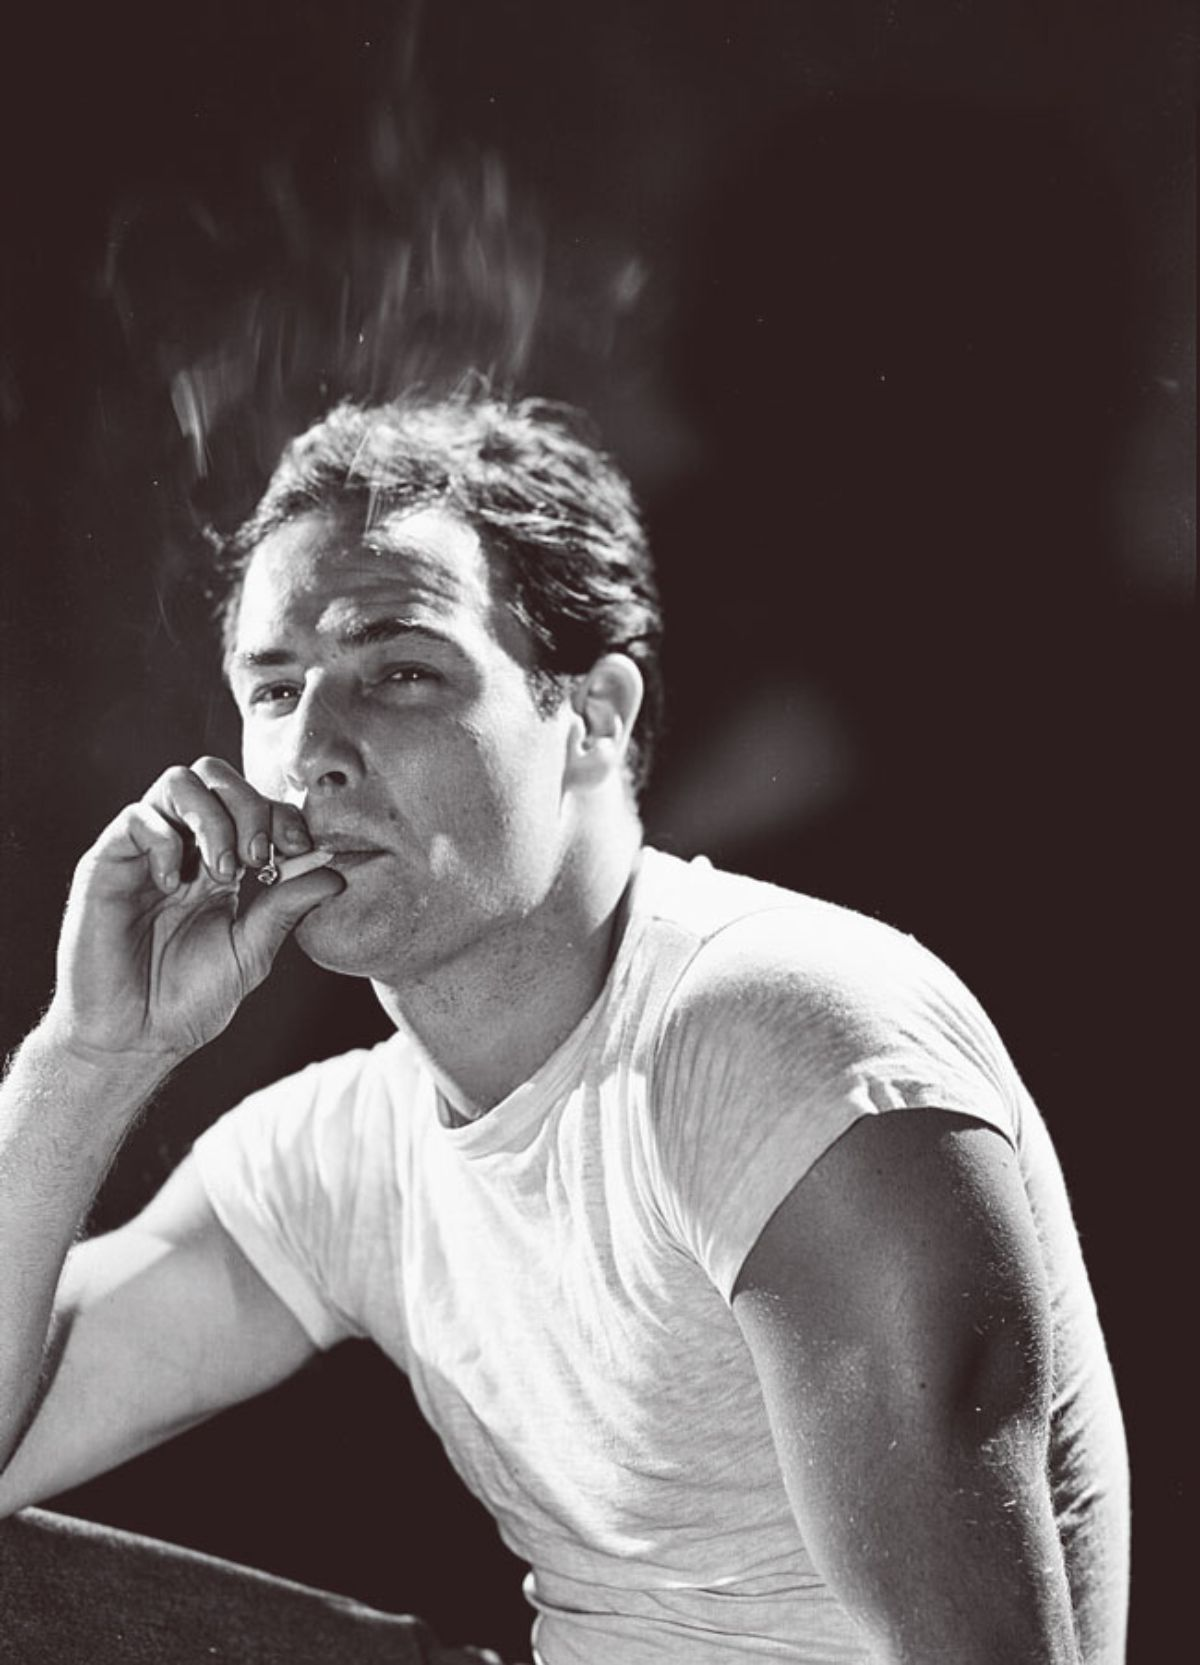 Foto Marlon Brando : Copyright © John Kobal Foundation / Getty Images